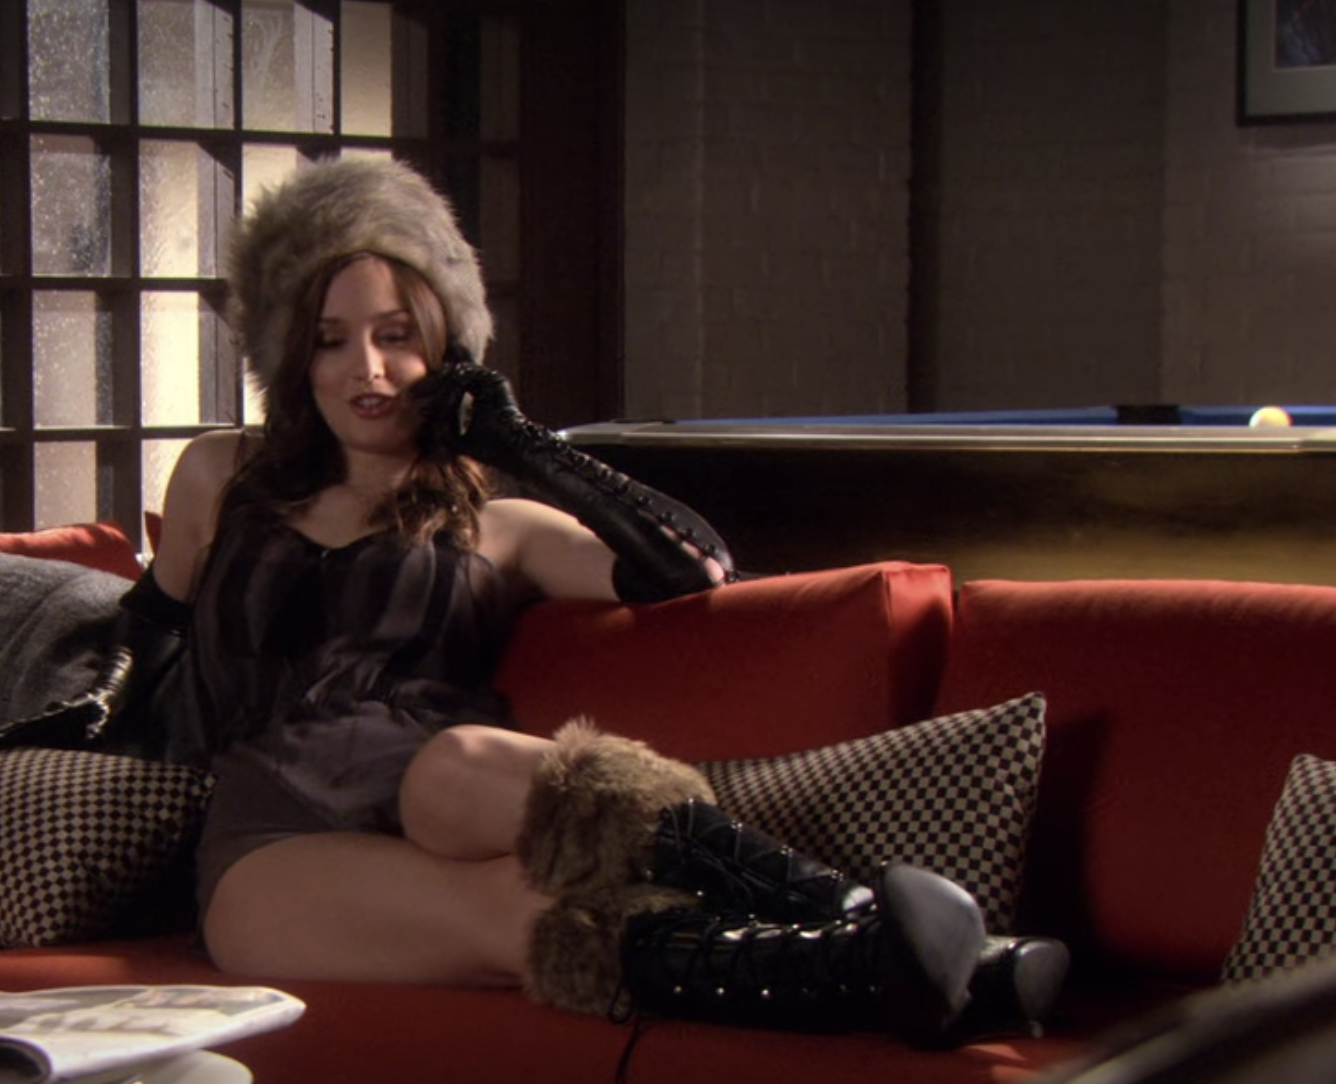 fur high heeled knee high boots with a tight silk slip, long shoulder-length gloves, and a fur hat